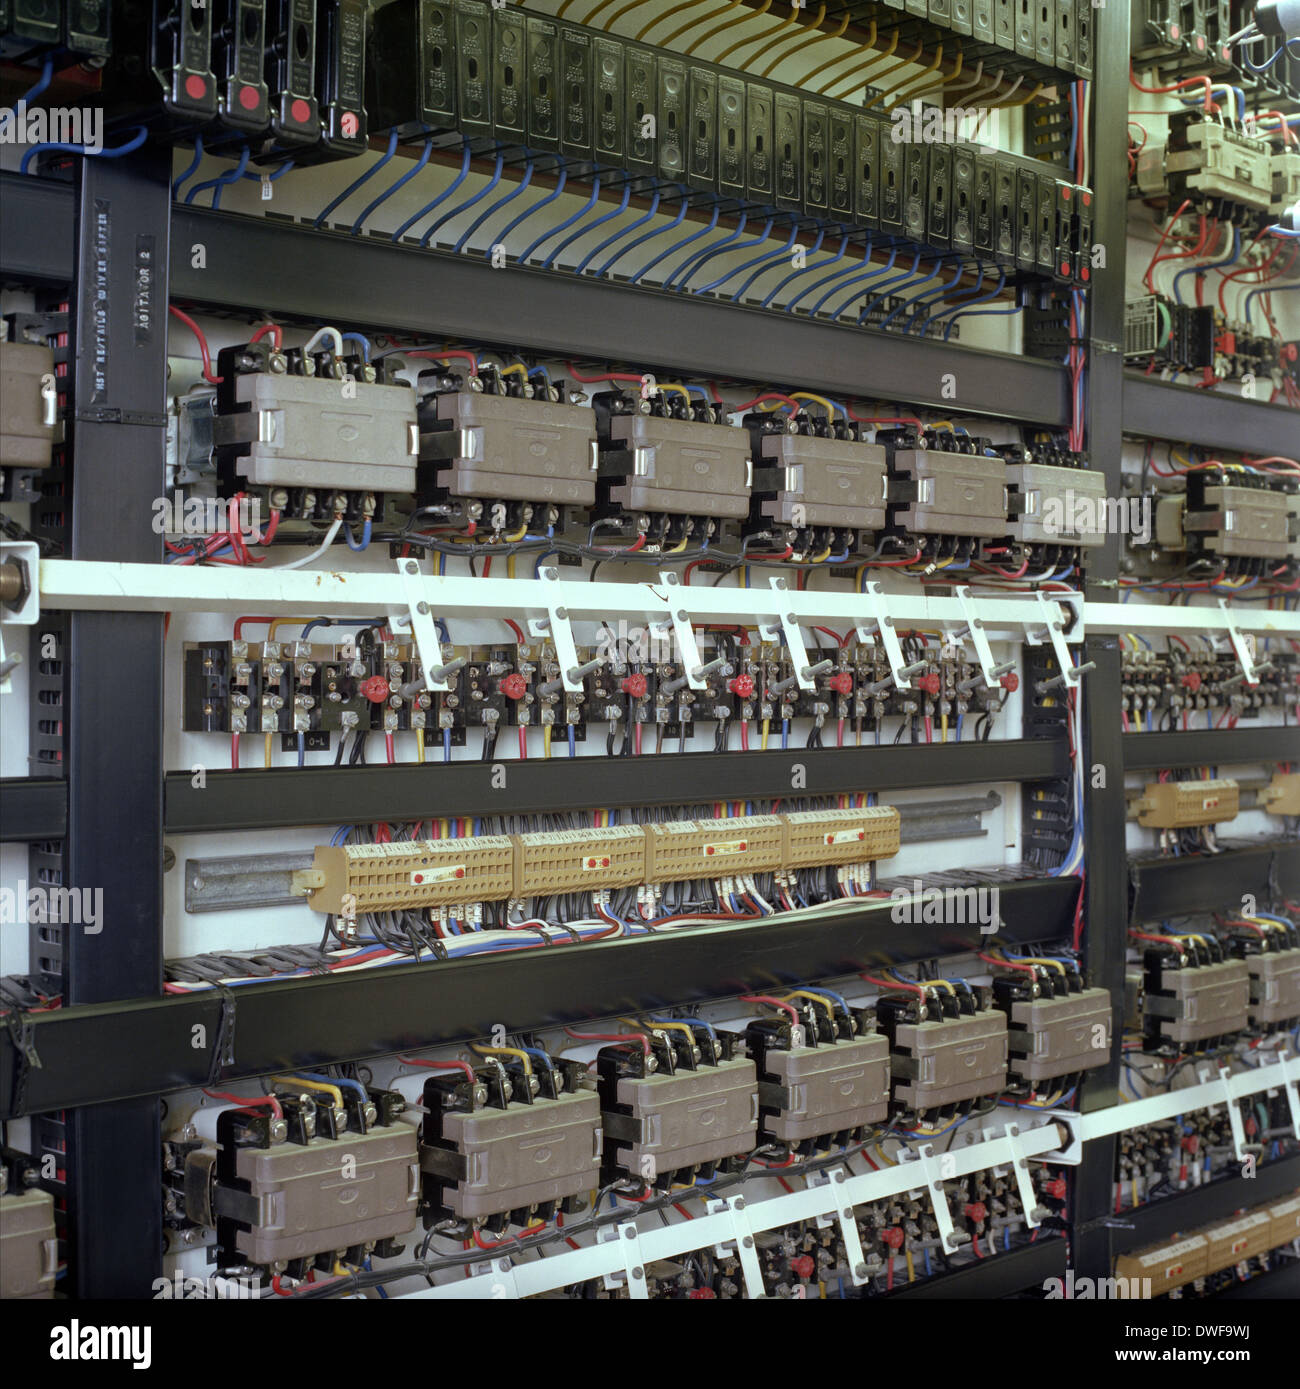 hight resolution of factory electrical control cabinet detail stock image